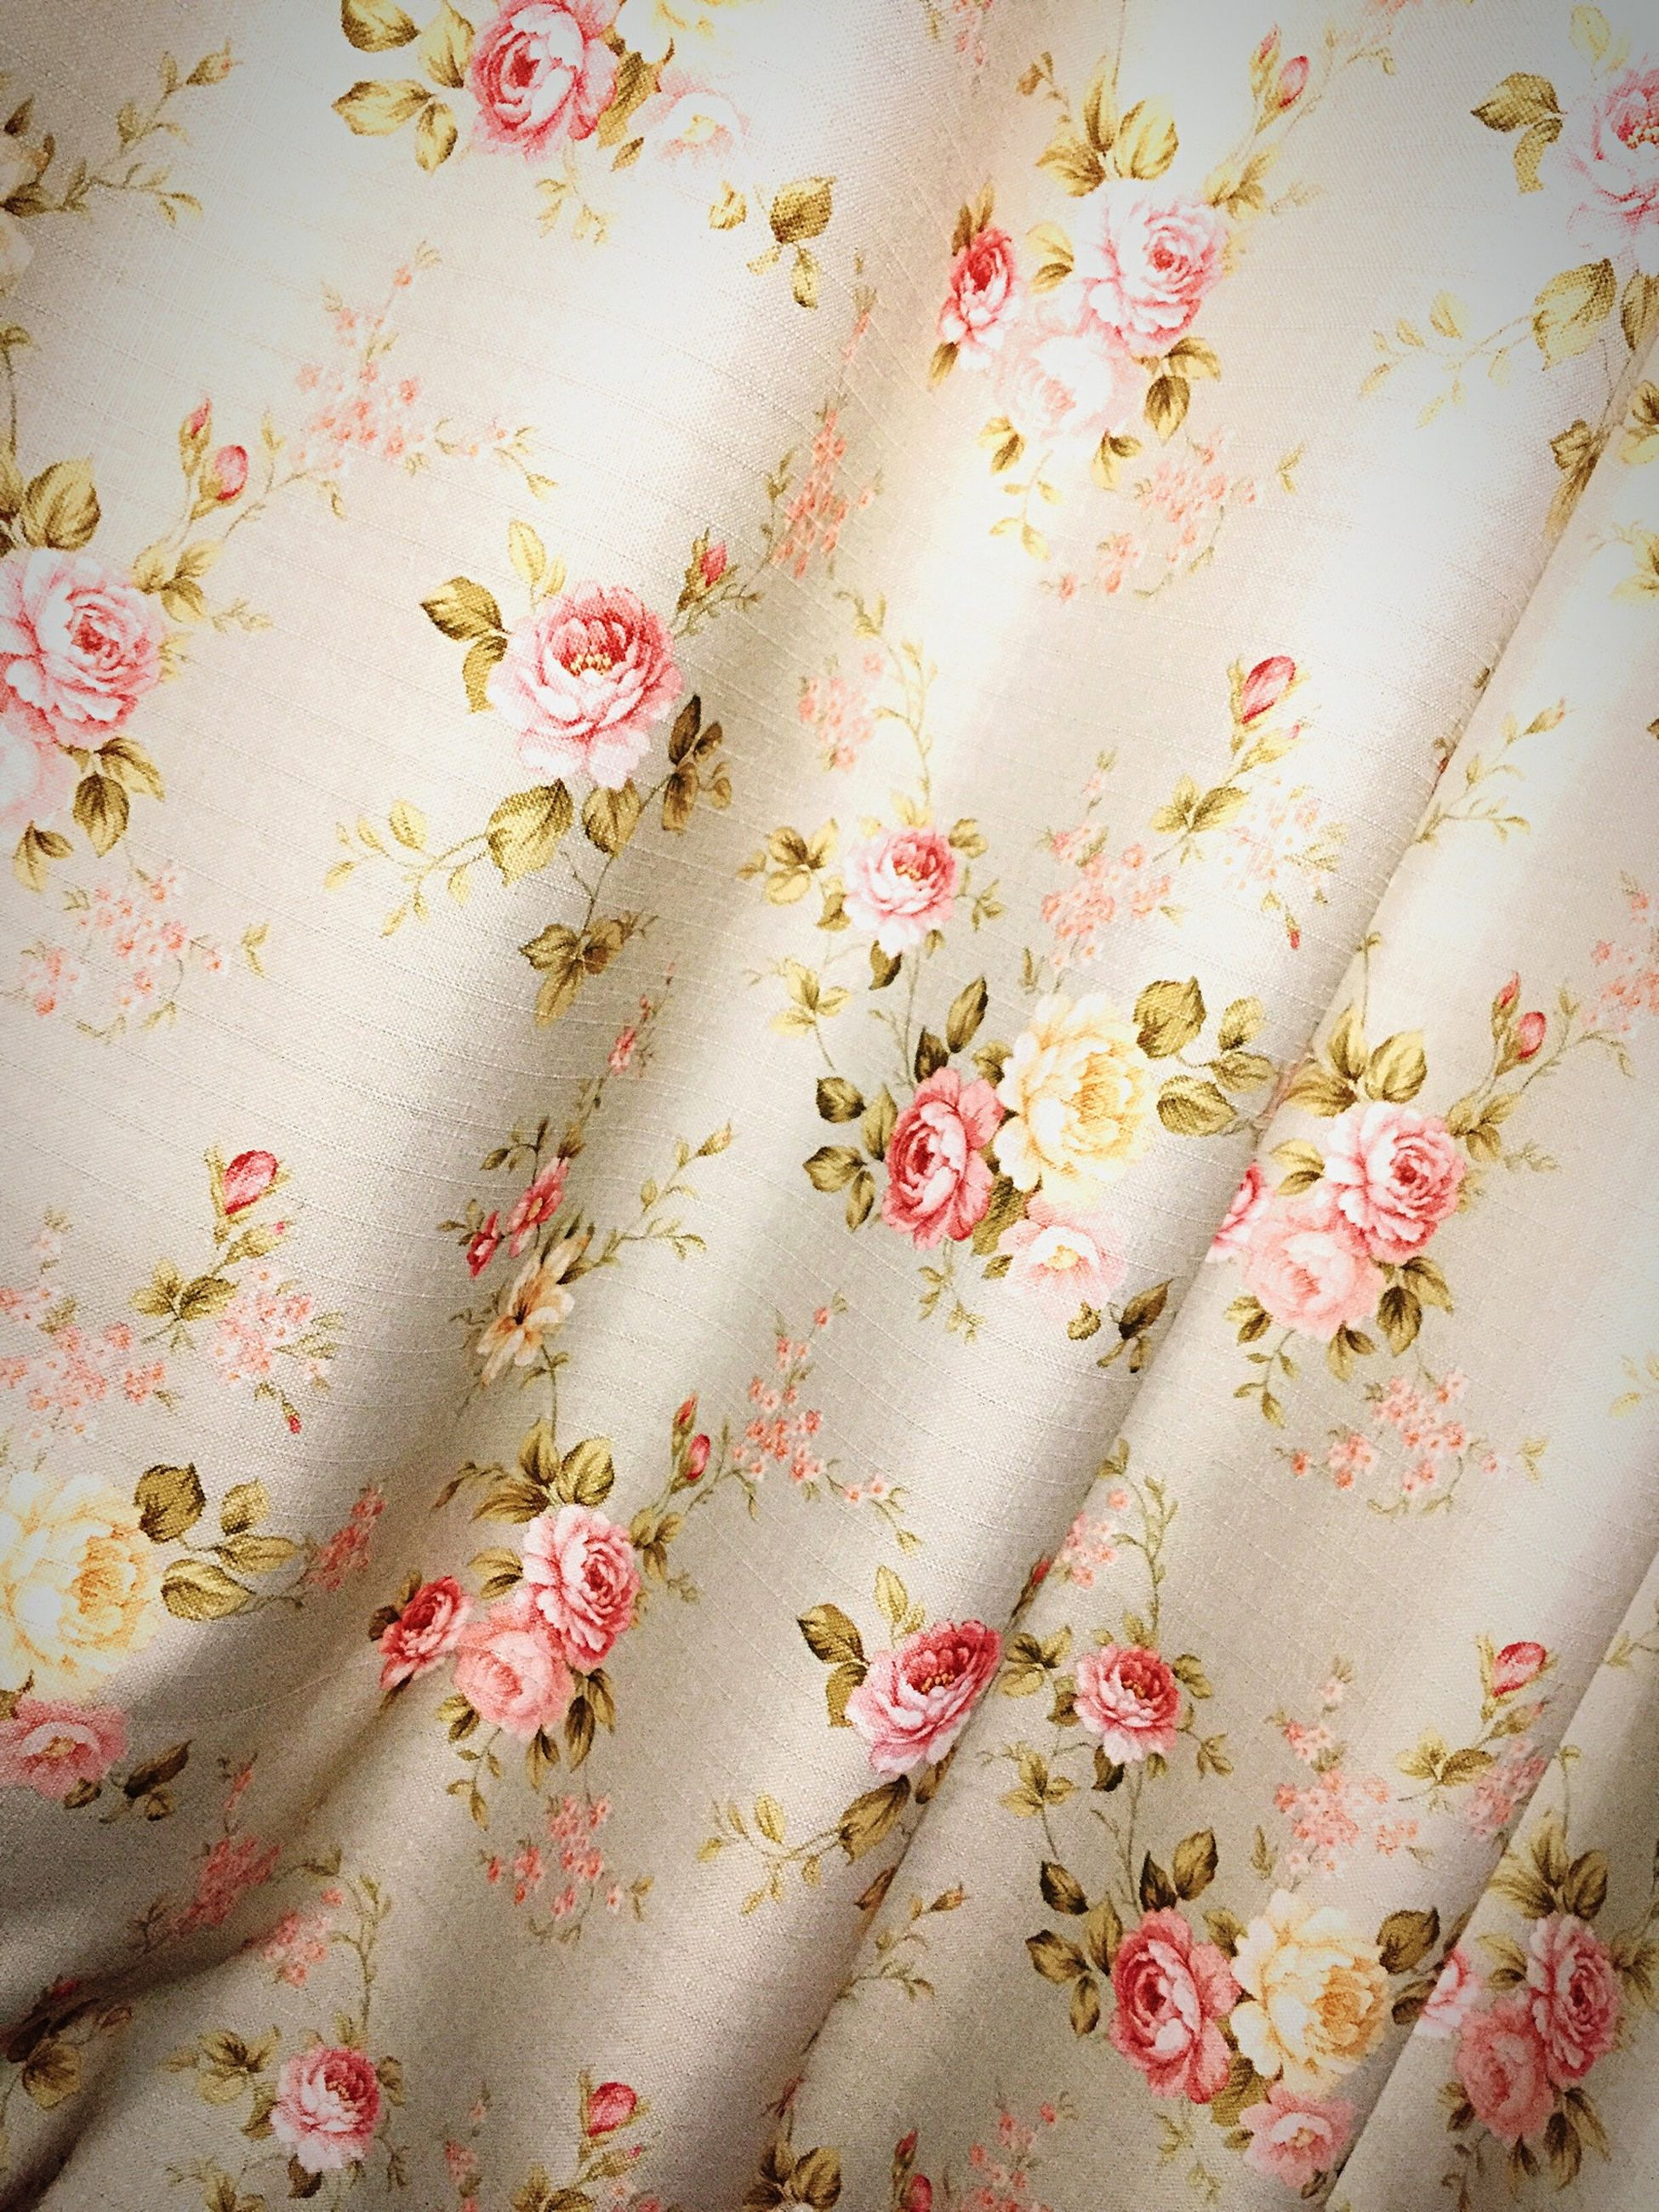 indoors, wall - building feature, floral pattern, high angle view, textile, pattern, pink color, home interior, full frame, ceiling, design, wall, textured, fabric, no people, backgrounds, creativity, close-up, decoration, multi colored